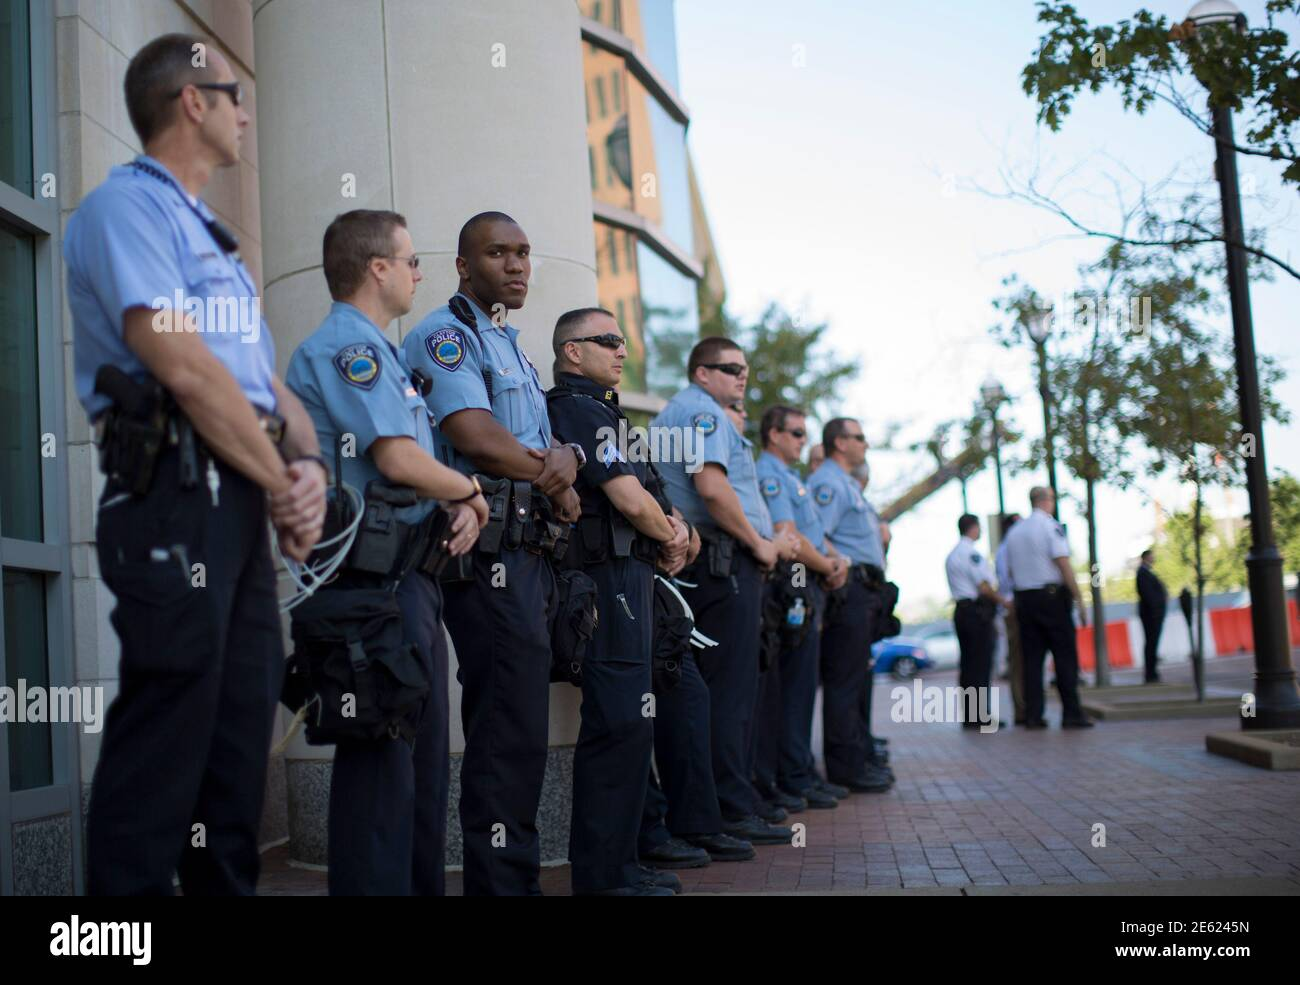 Police officers stand guard as demonstrators (not pictured) protest against the death of black teenager Michael Brown, outside St Louis County Circuit Clerk building in Clayton, Missouri August 12, 2014. Police said Brown, 18, was shot in a struggle with a gun in a police car but have not said why Brown was in the car. At least one shot was fired during the struggle and then the officer fired more shots before leaving the car, police said. But a witness to the shooting interviewed on local media has said that Brown had been putting his hands up to surrender when he was killed. The FBI has open Stock Photo